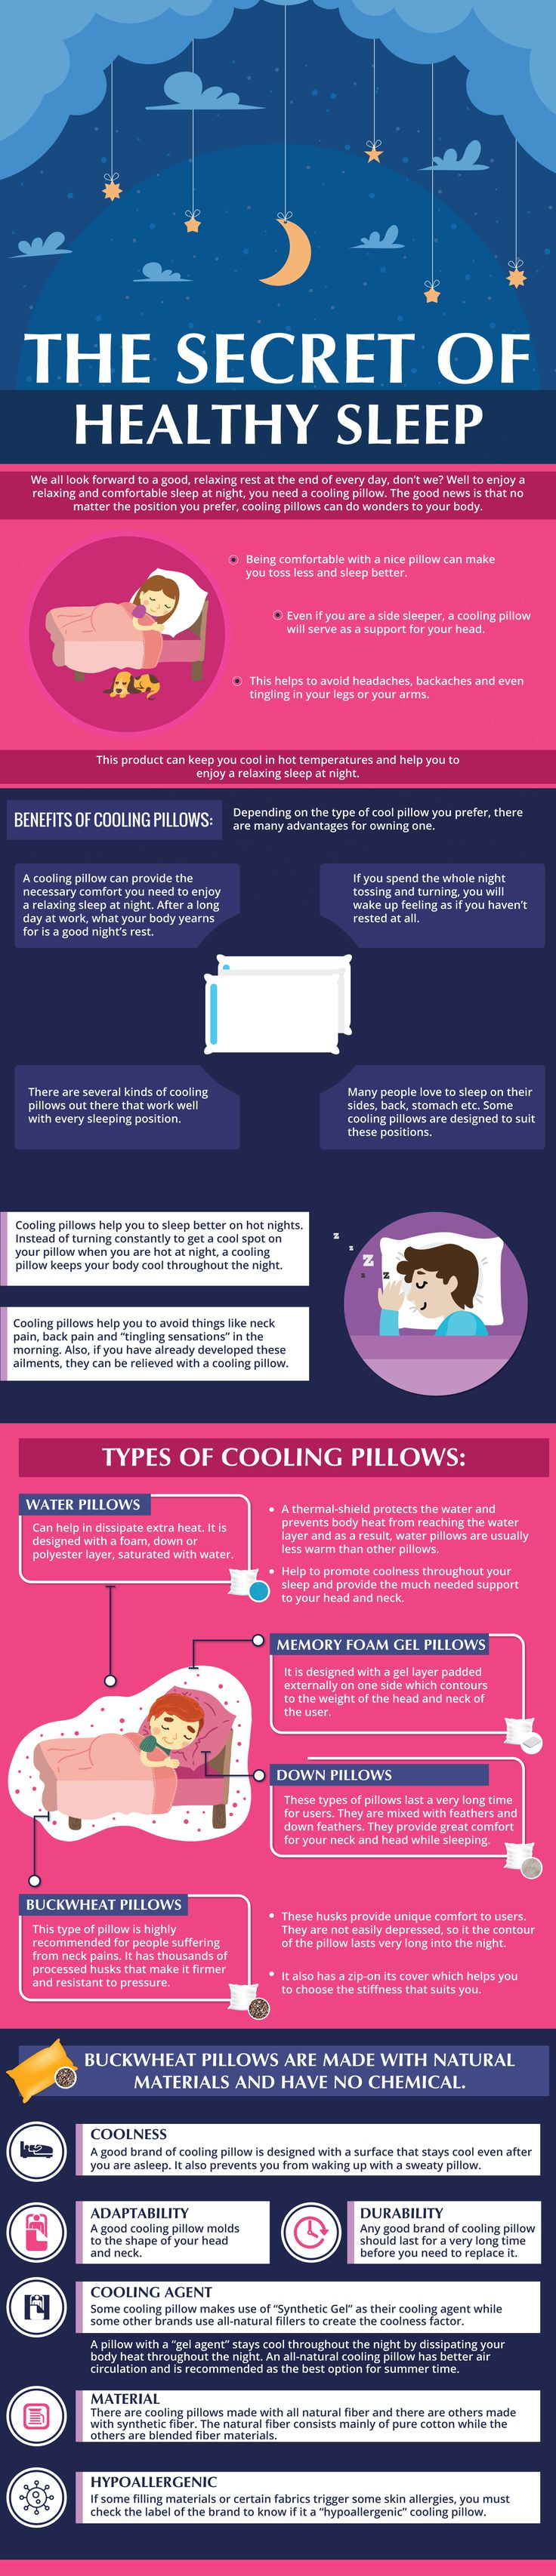 Here you can also find 10 Best Cooling Pillows: http://www.reviewsbee.com/cooling-pillows-reviews/  #ten #best #cooling #pillows #tips #comfort #healthy #lifestyle #reviews #reviewsbee